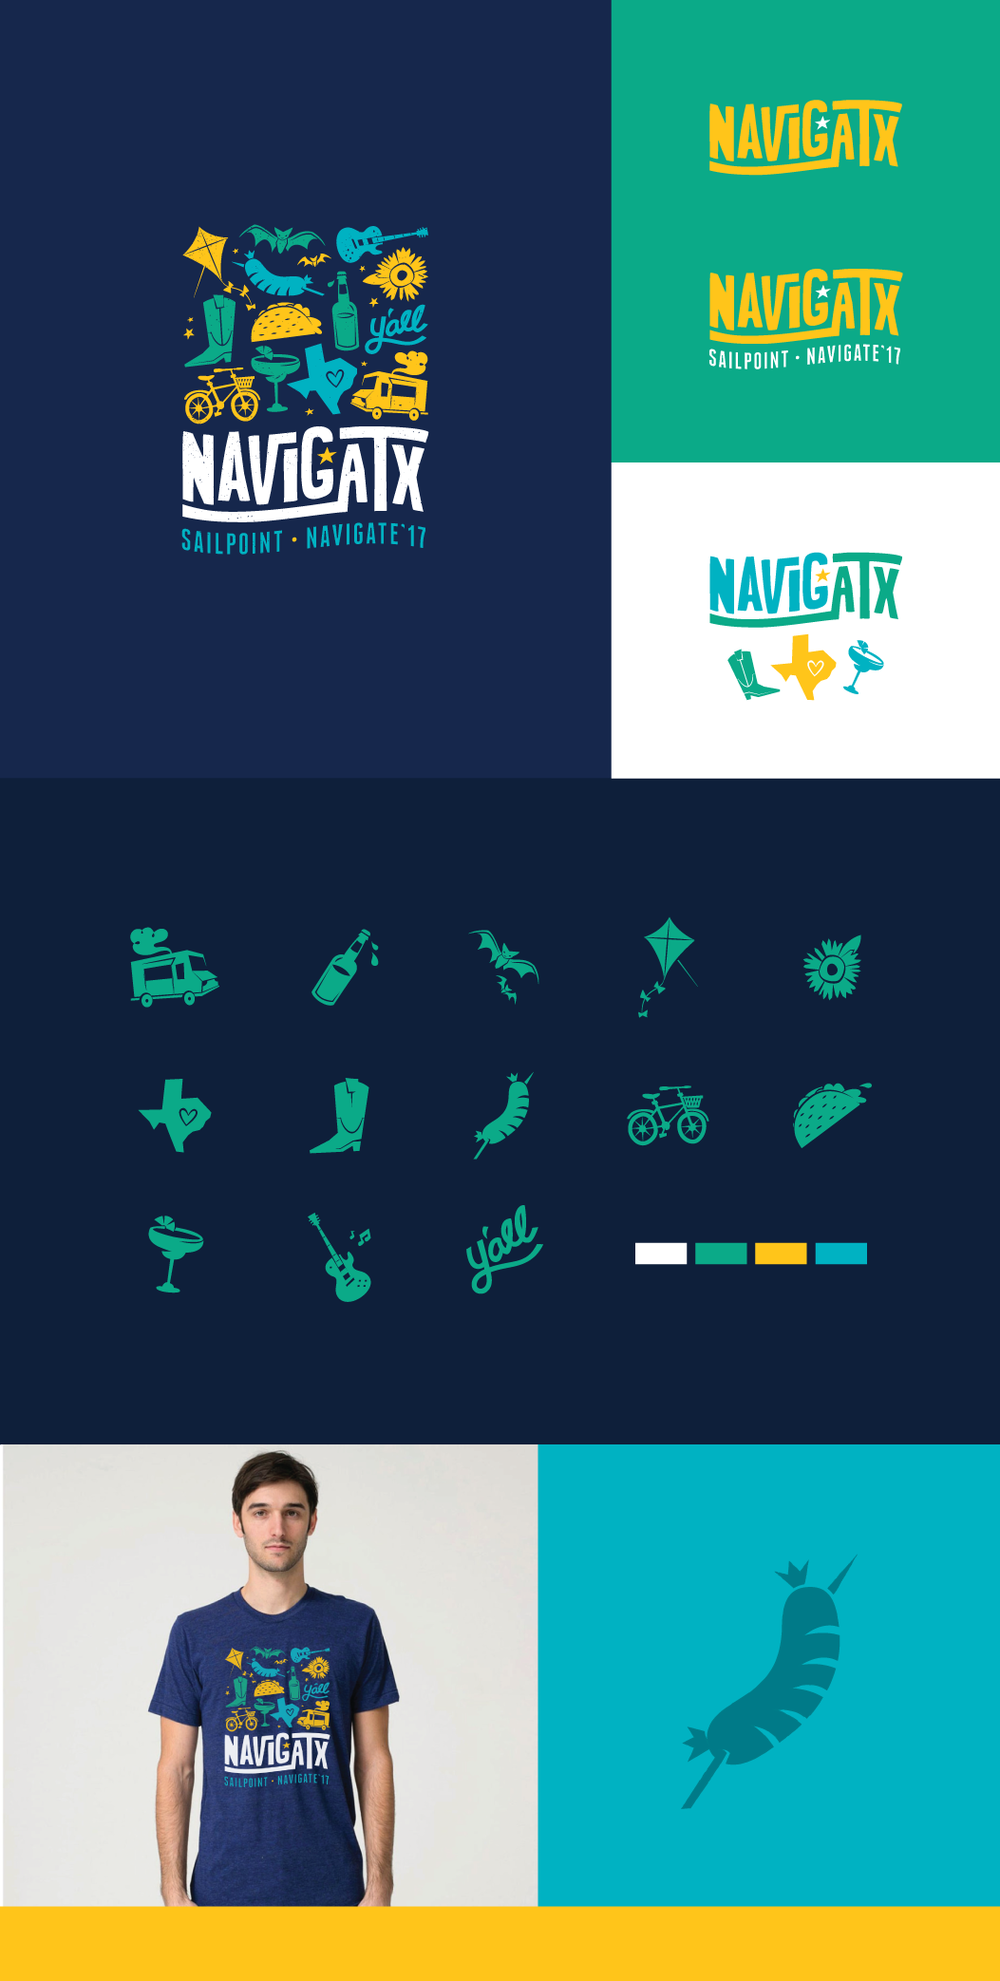 Event branding and icon set for SailPoint's annual post-conference party.